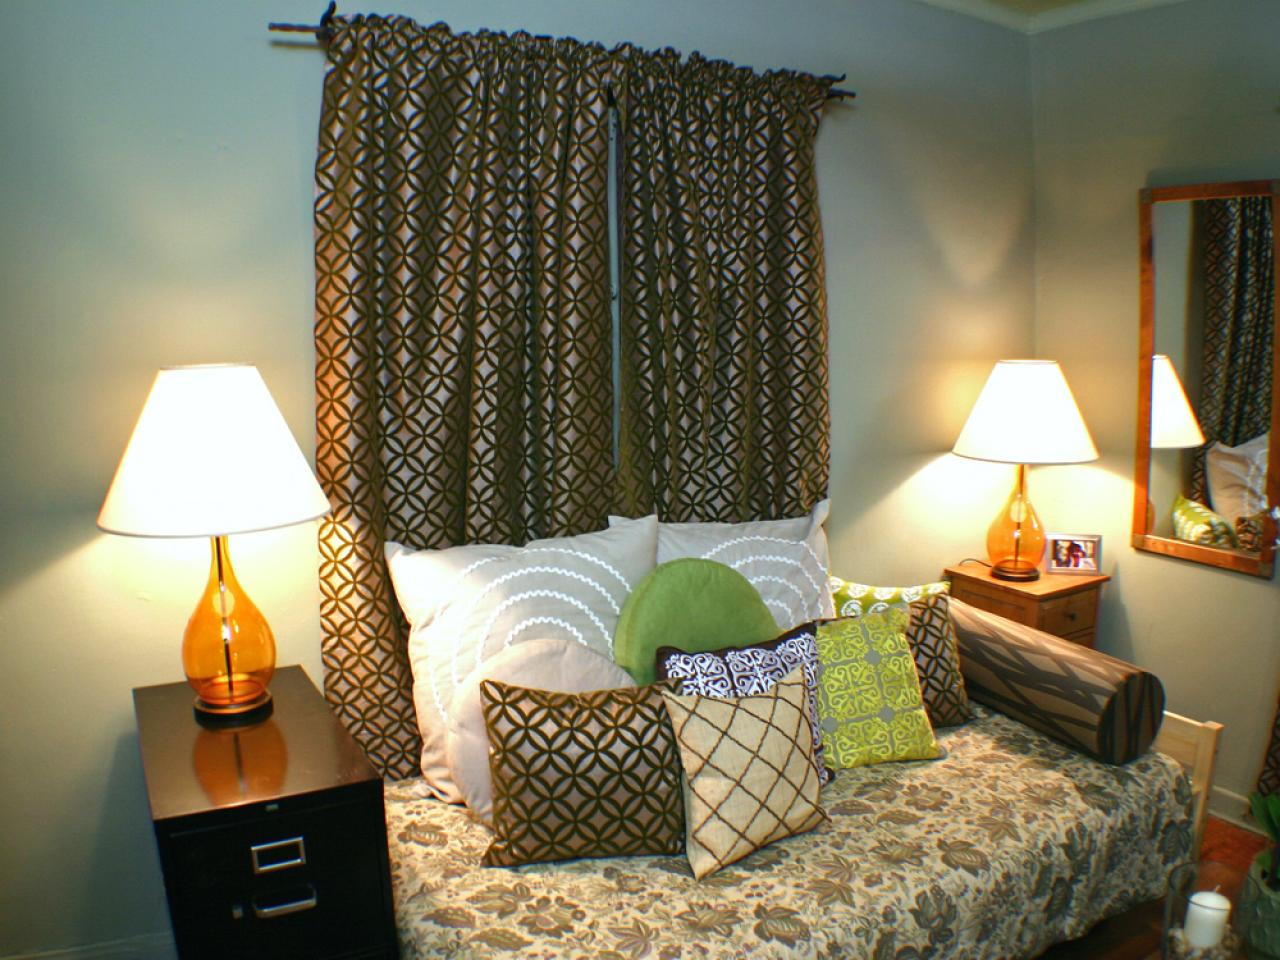 https://hgtvhome.sndimg.com/content/dam/images/hgtv/fullset/2008/3/27/0/h24hd104_day-bed-office.jpg.rend.hgtvcom.1280.960.suffix/1400942688000.jpeg